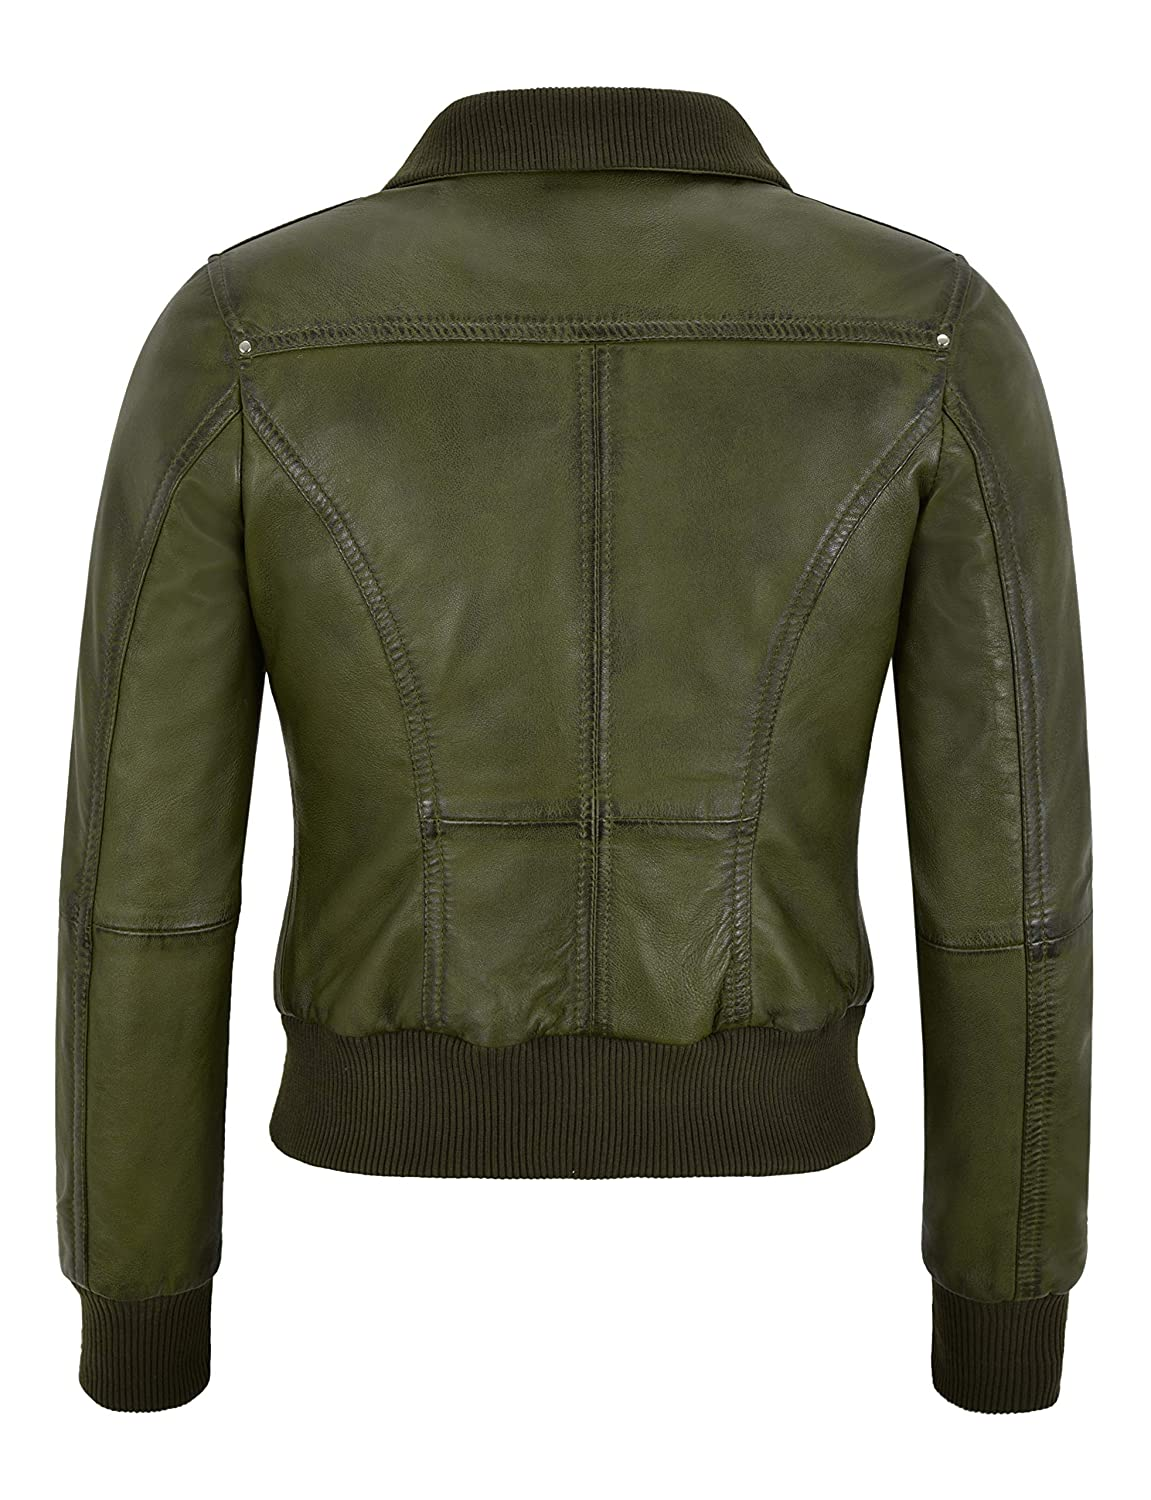 Fusion Ladies Olive Green Wax Short Bomber Biker Motorcycle Style Leather Jacket 3758